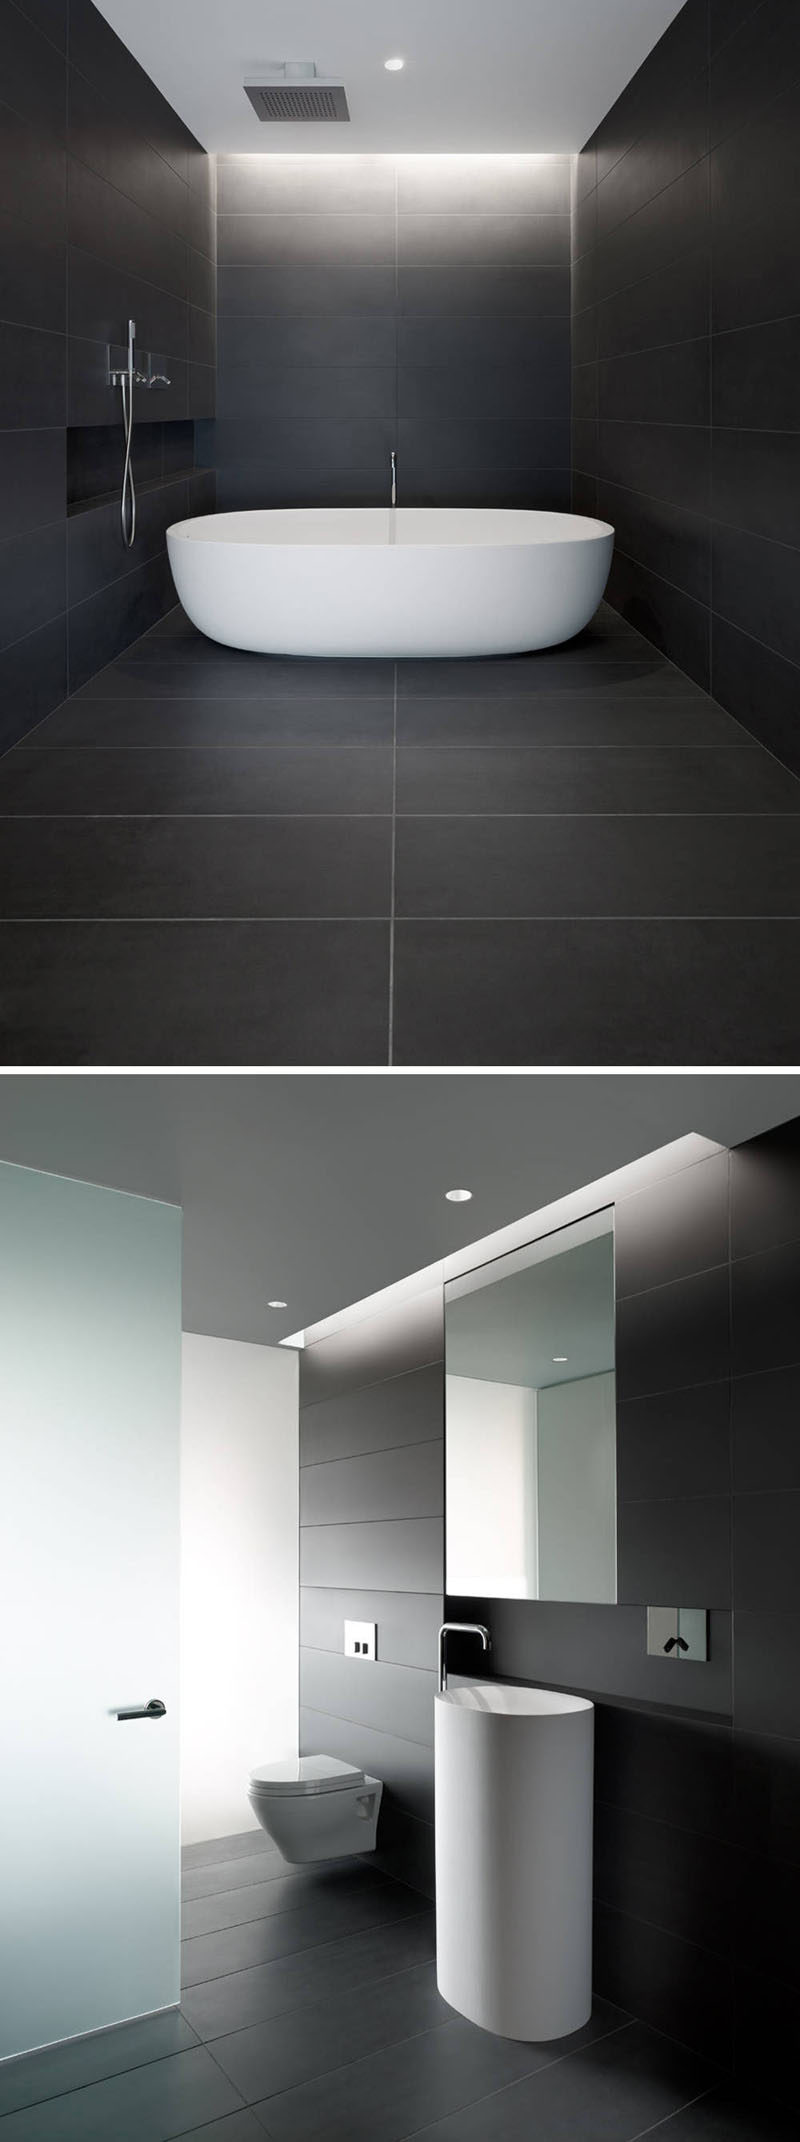 Dark Floor Tile bathroom tile idea - use large tiles on the floor and walls (18